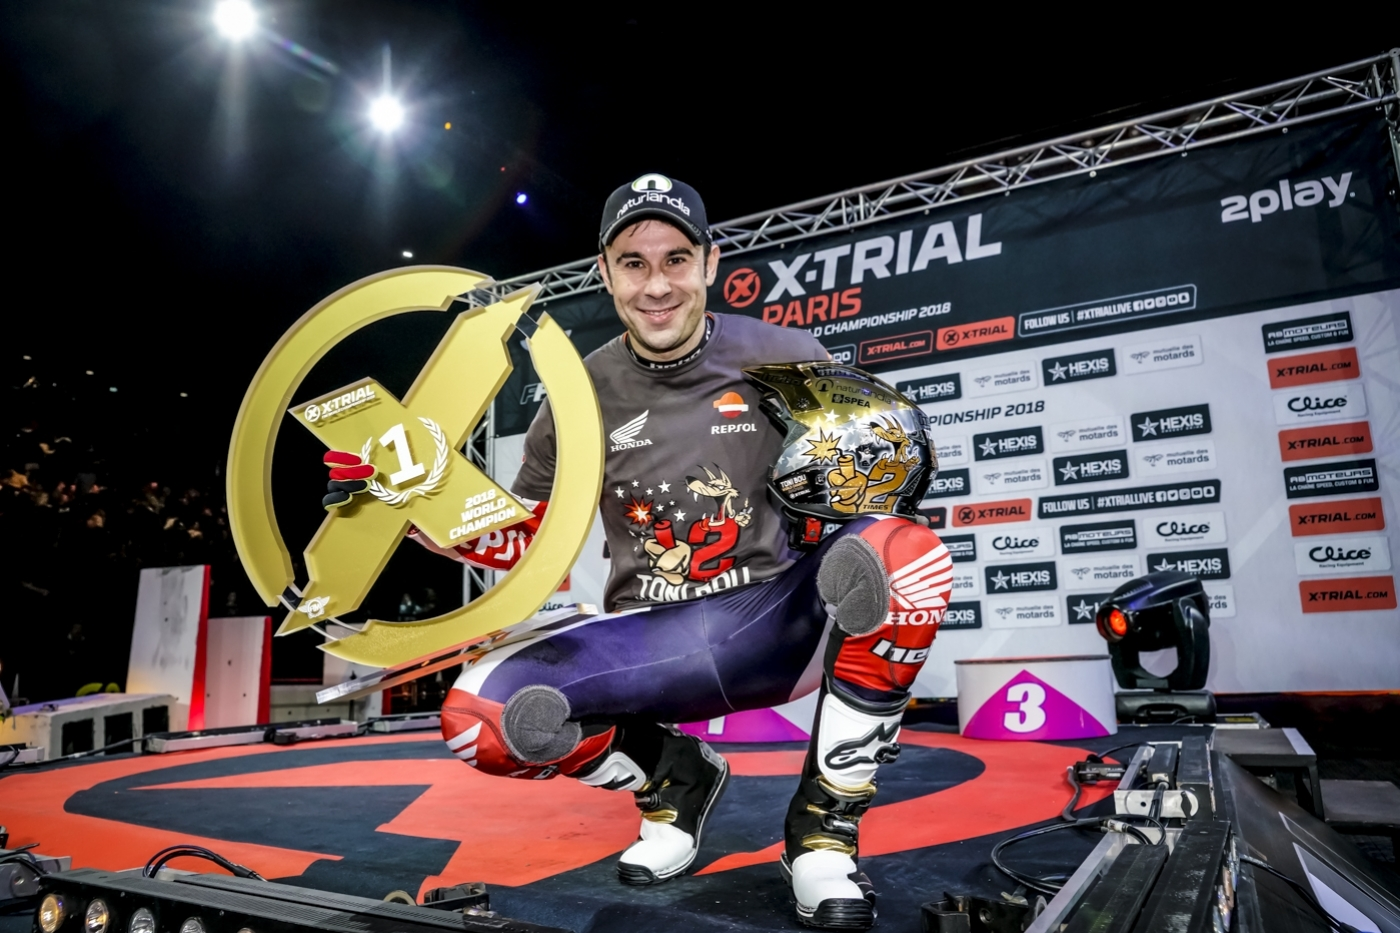 First victory for Busto and title for Bou in Paris